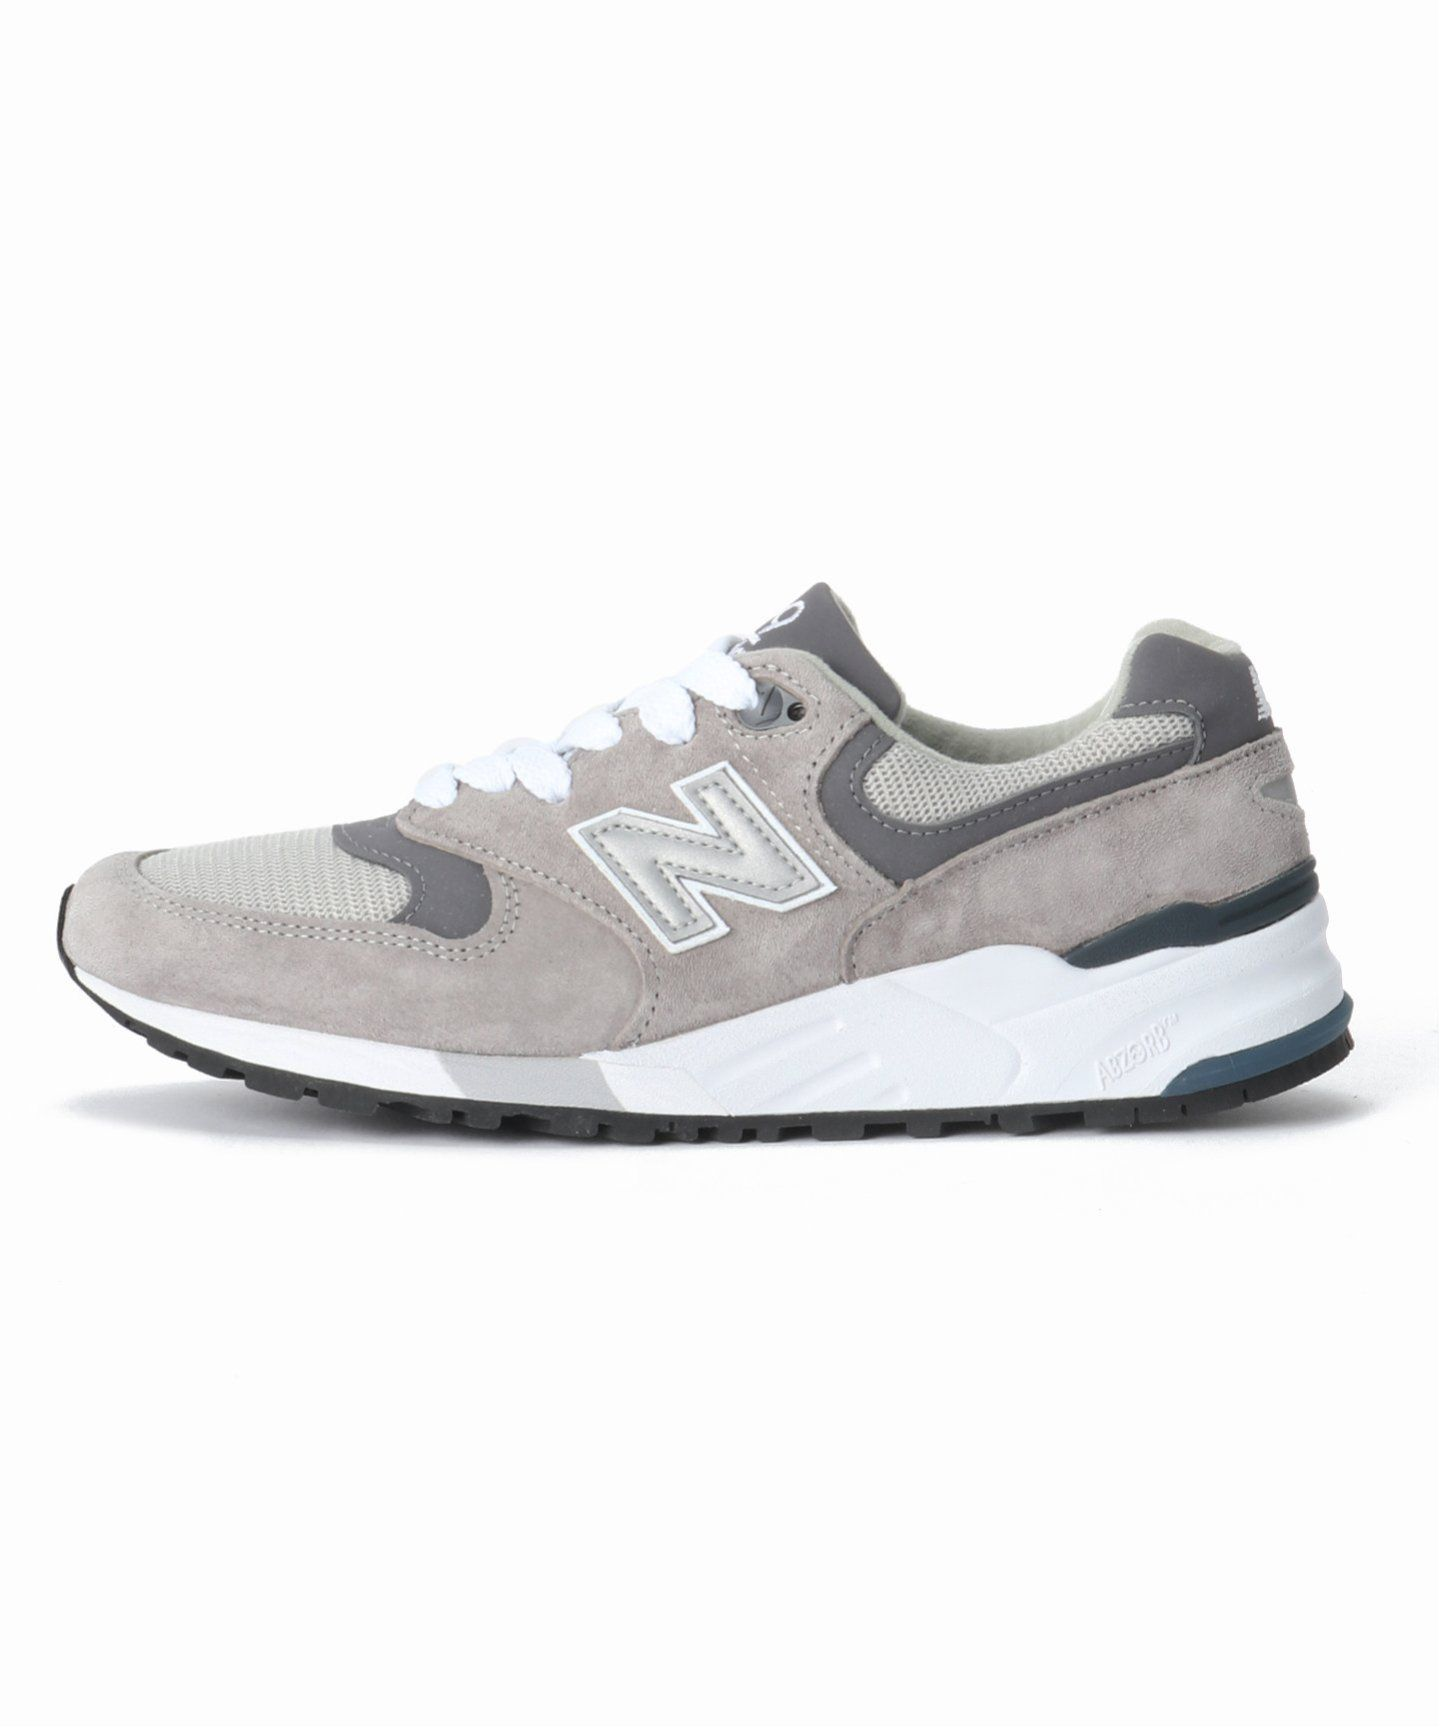 c7f43e34bf0a2 SLOBE IENA|NEW BALANCE M999スニーカー in 2019 | Products ...